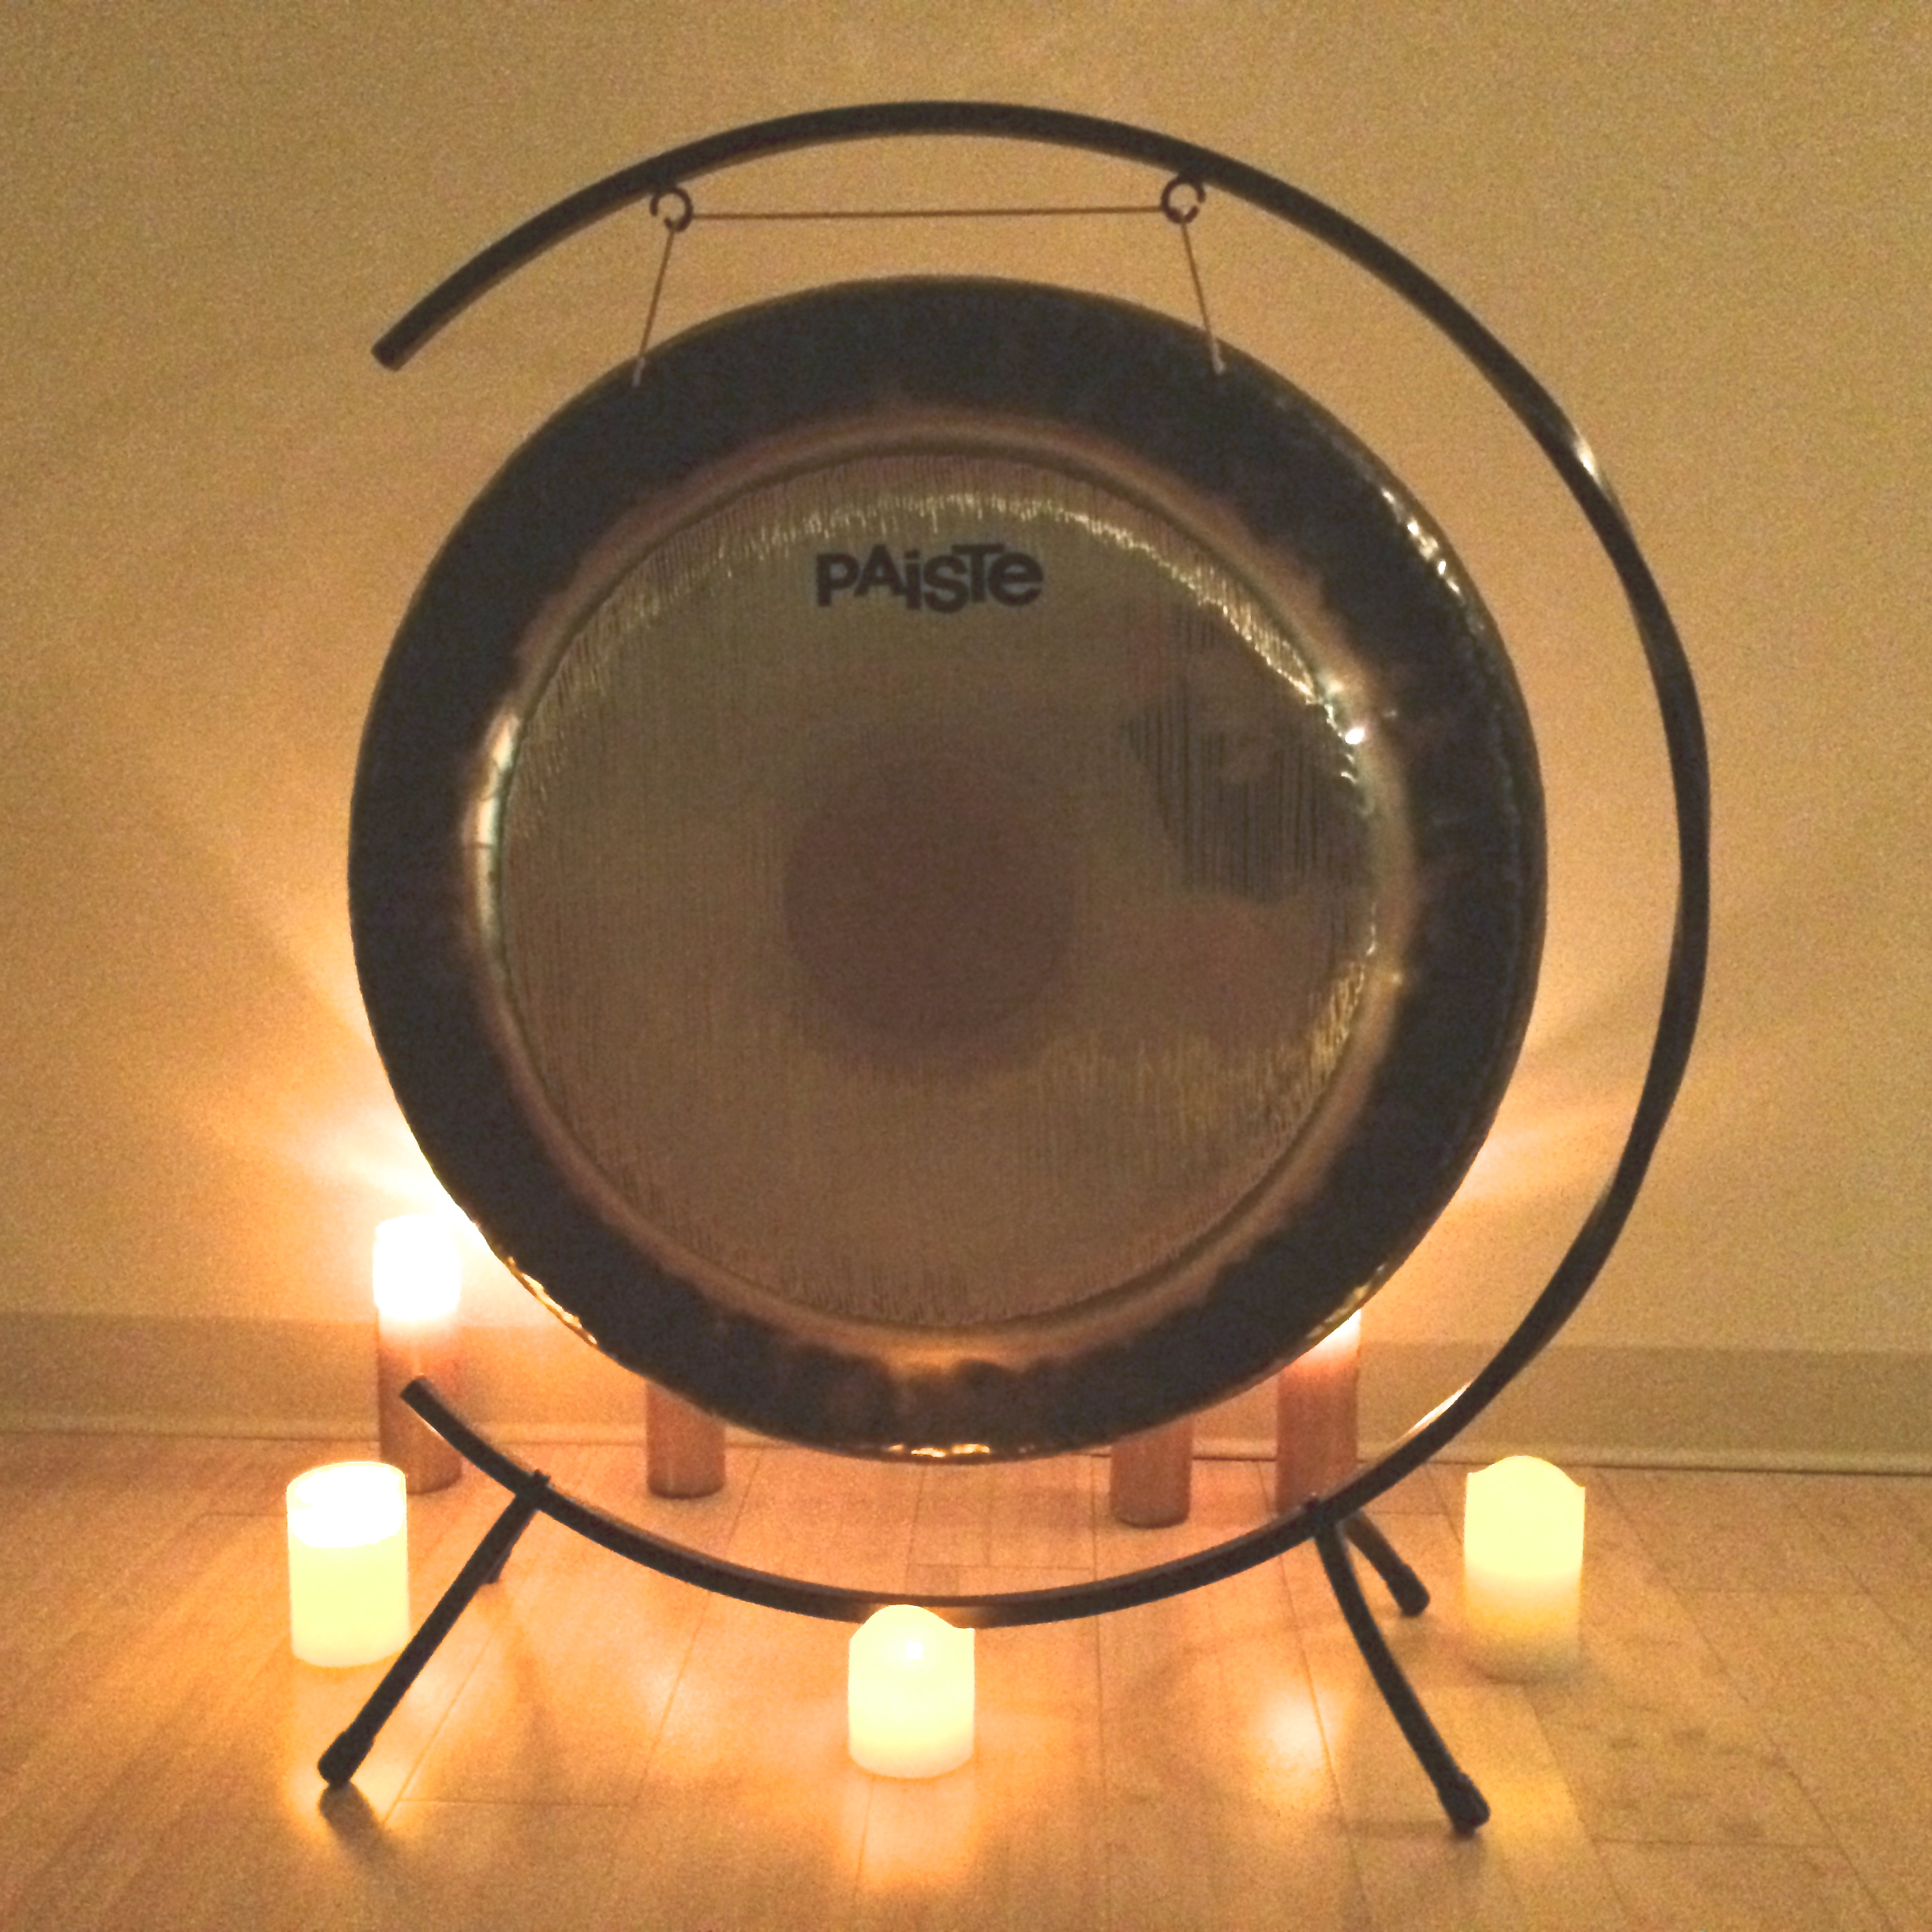 The sound of the Gong creates deep relaxation